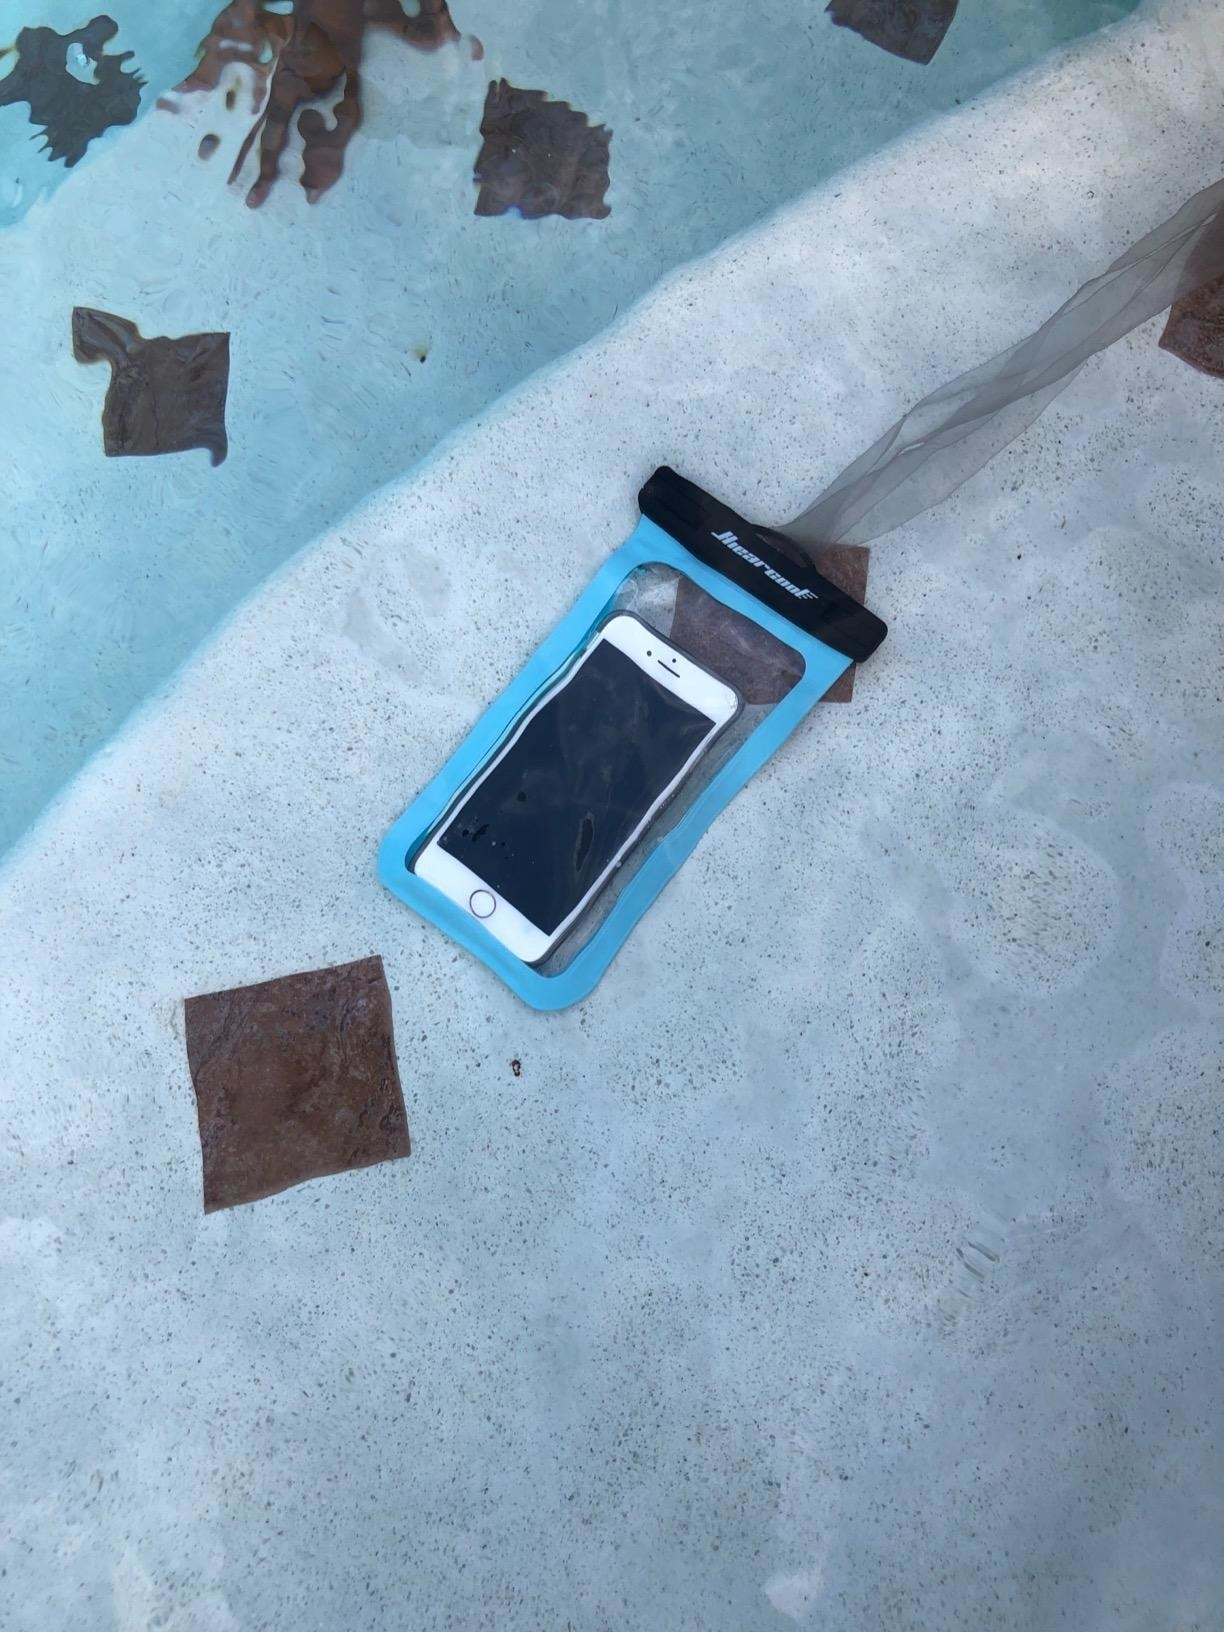 the pouch with a phone inside underwater at a pool